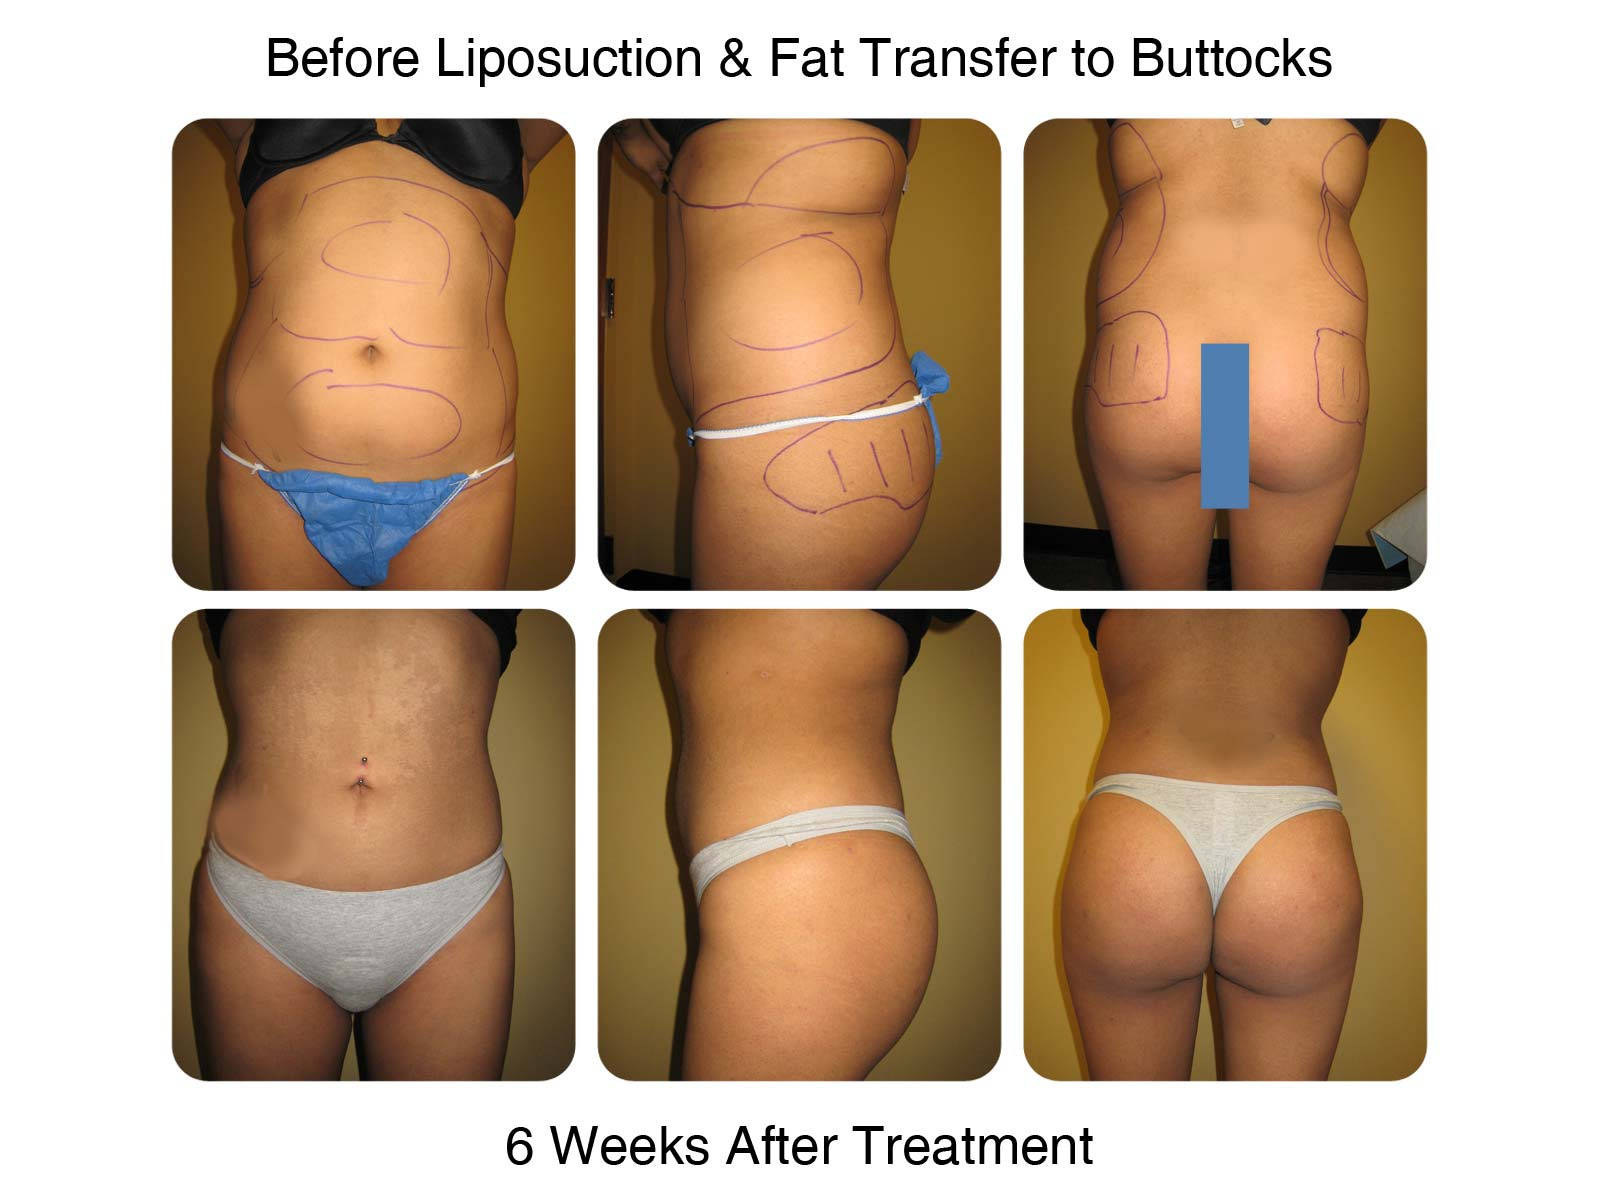 Brazilian Butt Lift Fat Transfer Before and After 8